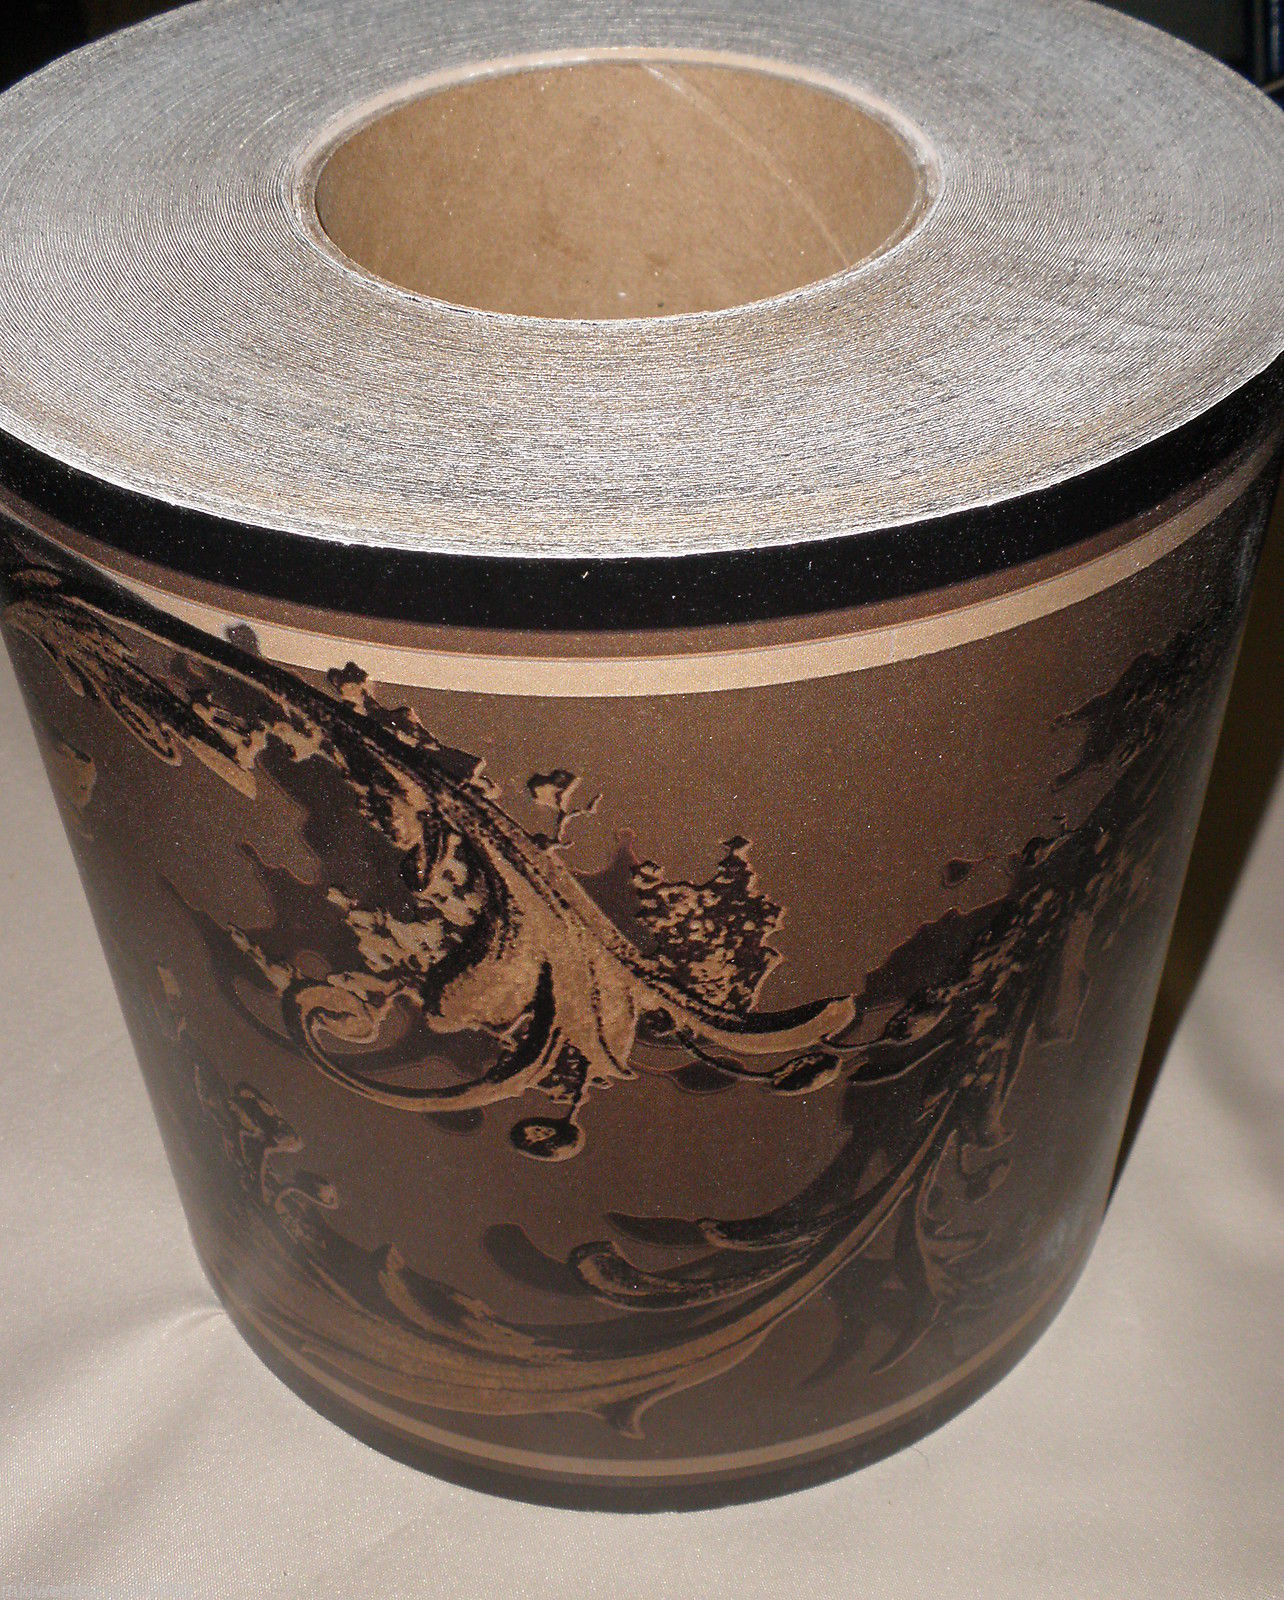 "Tape Technologies Keystone Everest Dark 7"" X 150' Wallpaper Border#1220350-1-6"